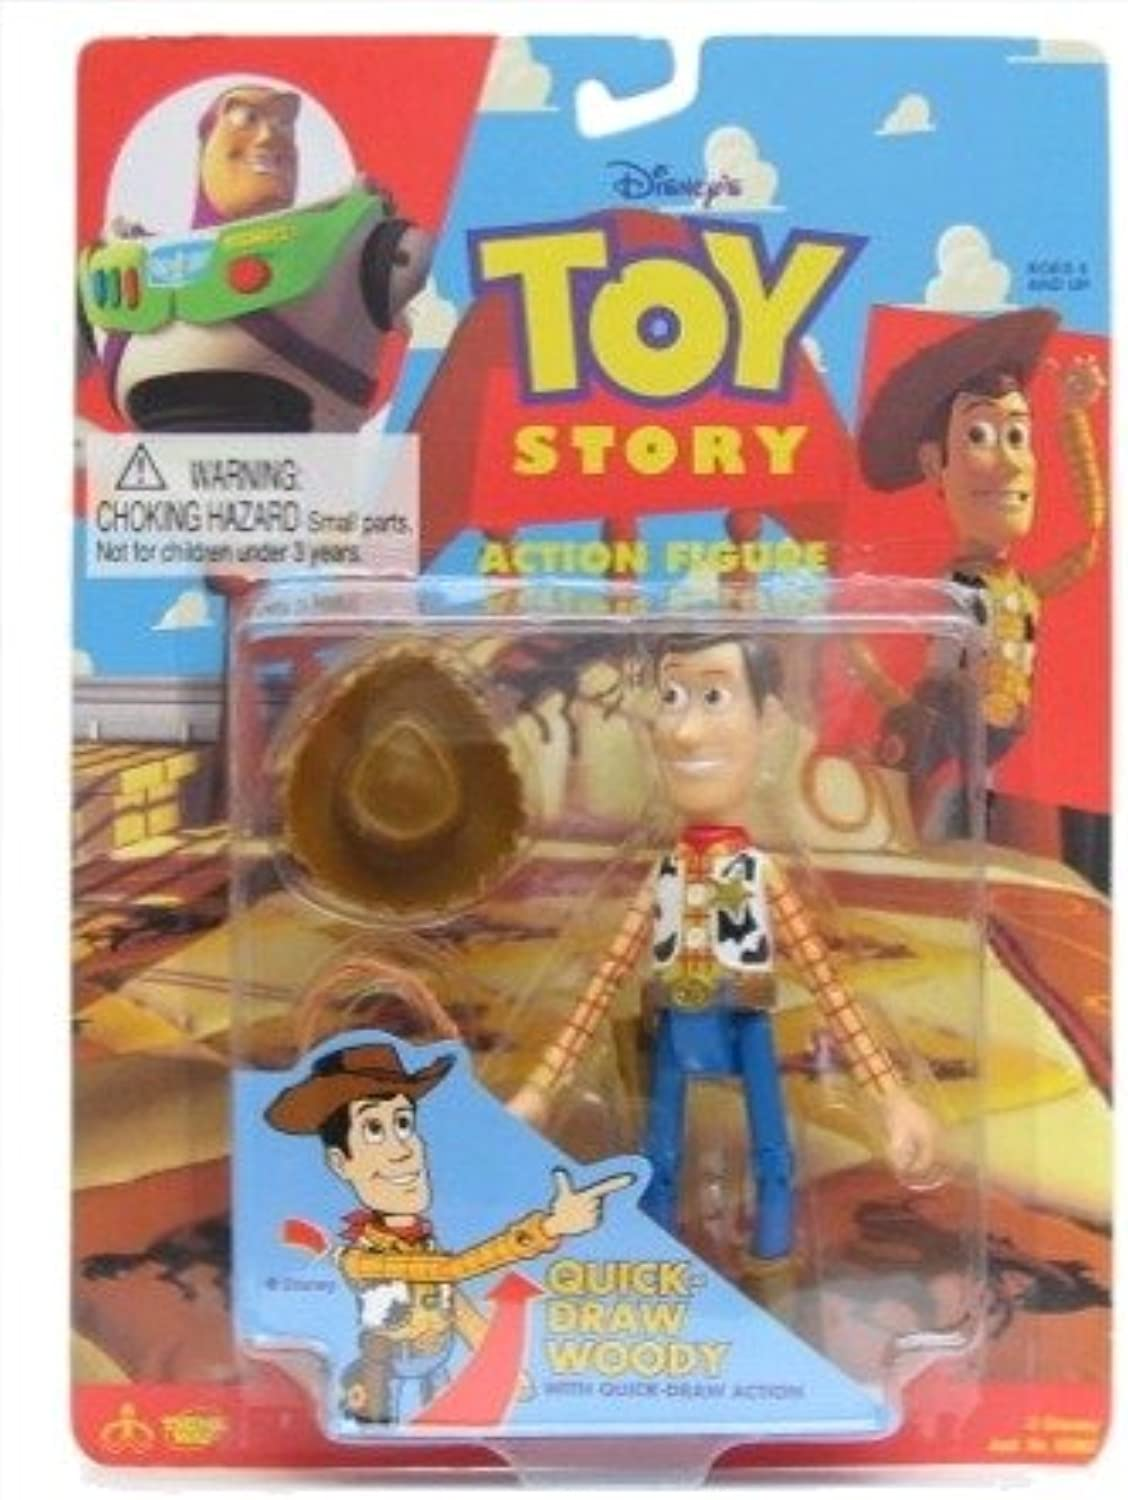 Disney Toy Story Quick Draw Woody Action Figure with Quick Draw Action